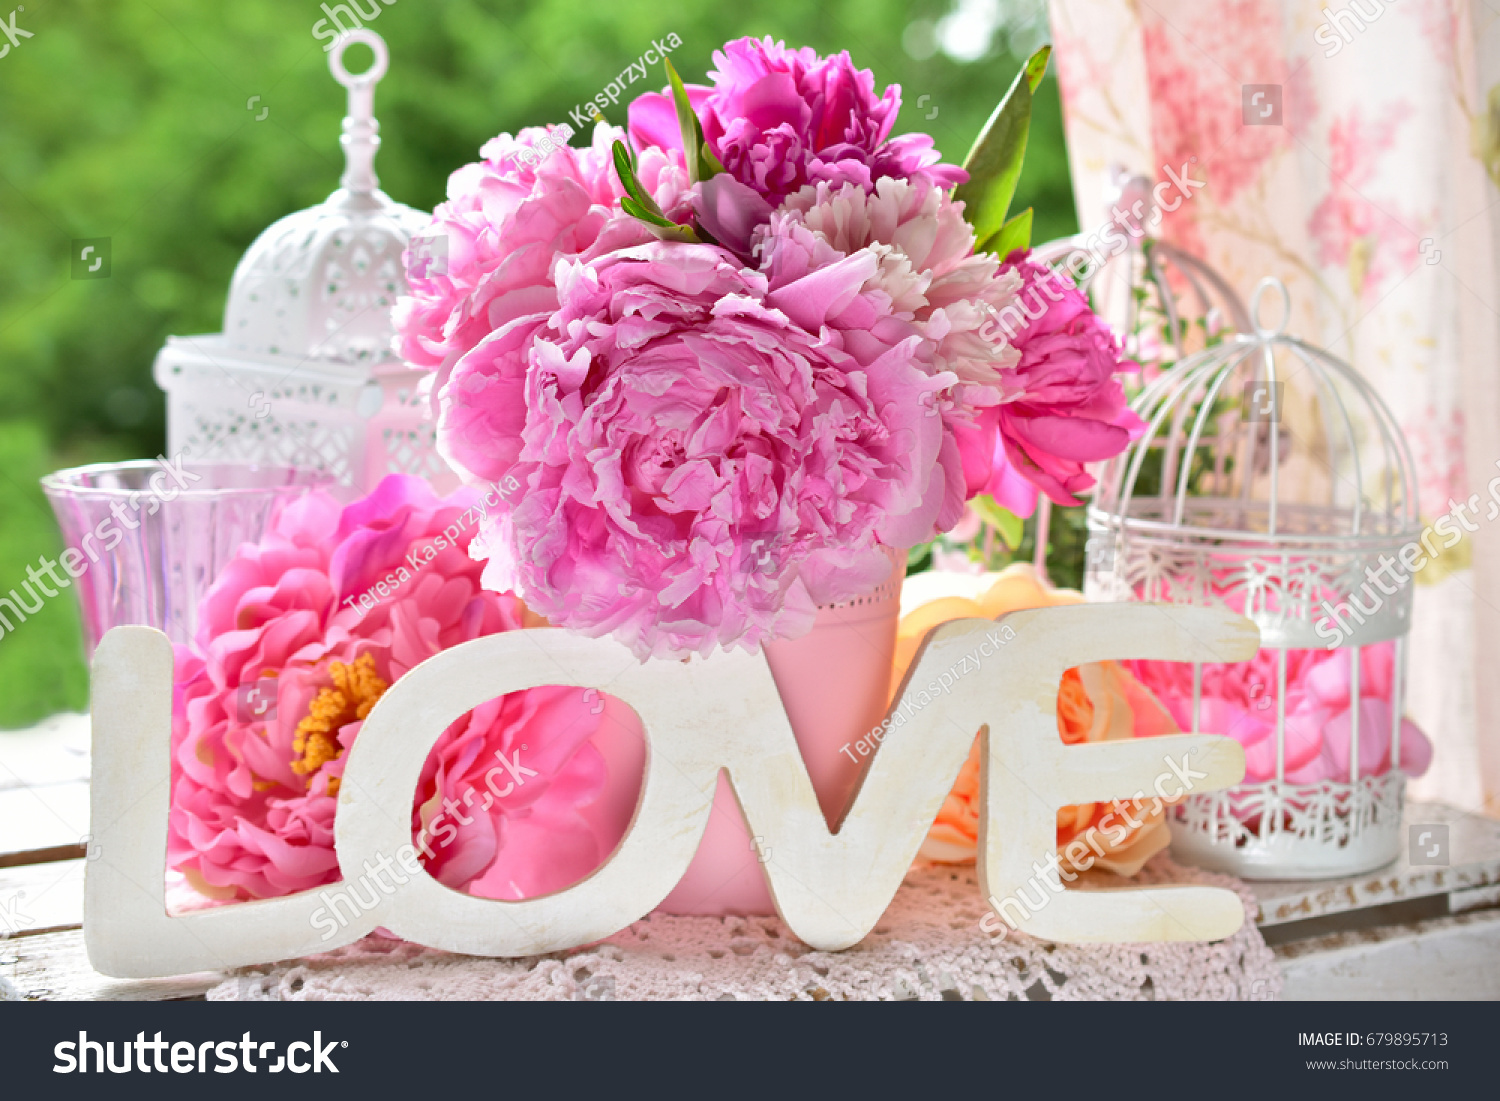 Beautiful love decoration wooden letters peony stock photo edit now beautiful love decoration with wooden letters and peony flowers on the table in the garden izmirmasajfo